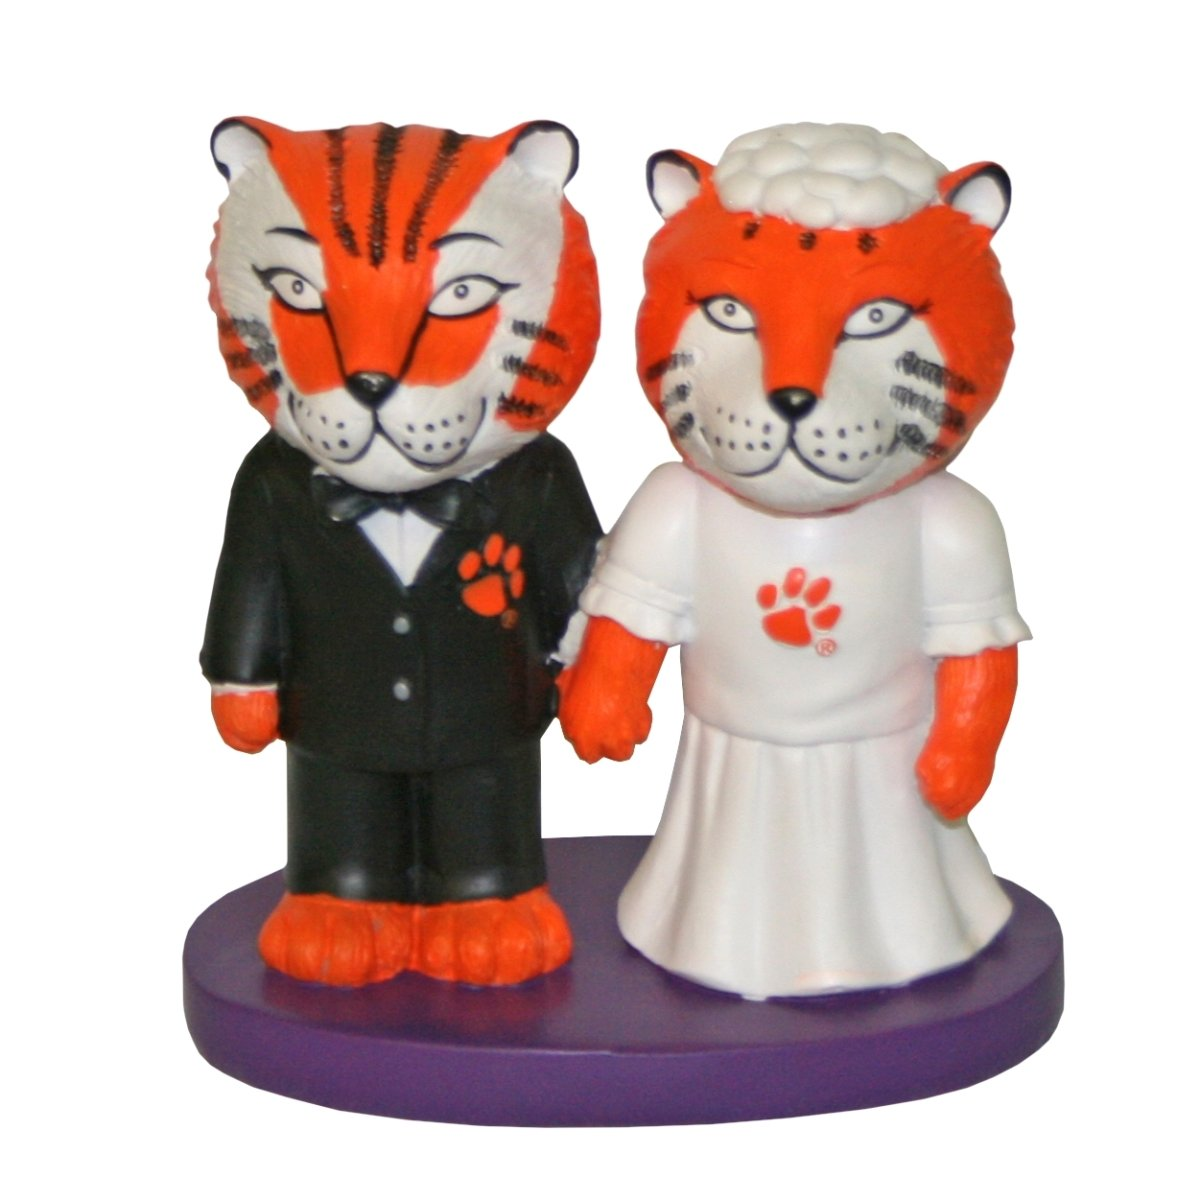 Clemson Tiger Bride/groom Wedding Cake Topper - Mr. Knickerbocker